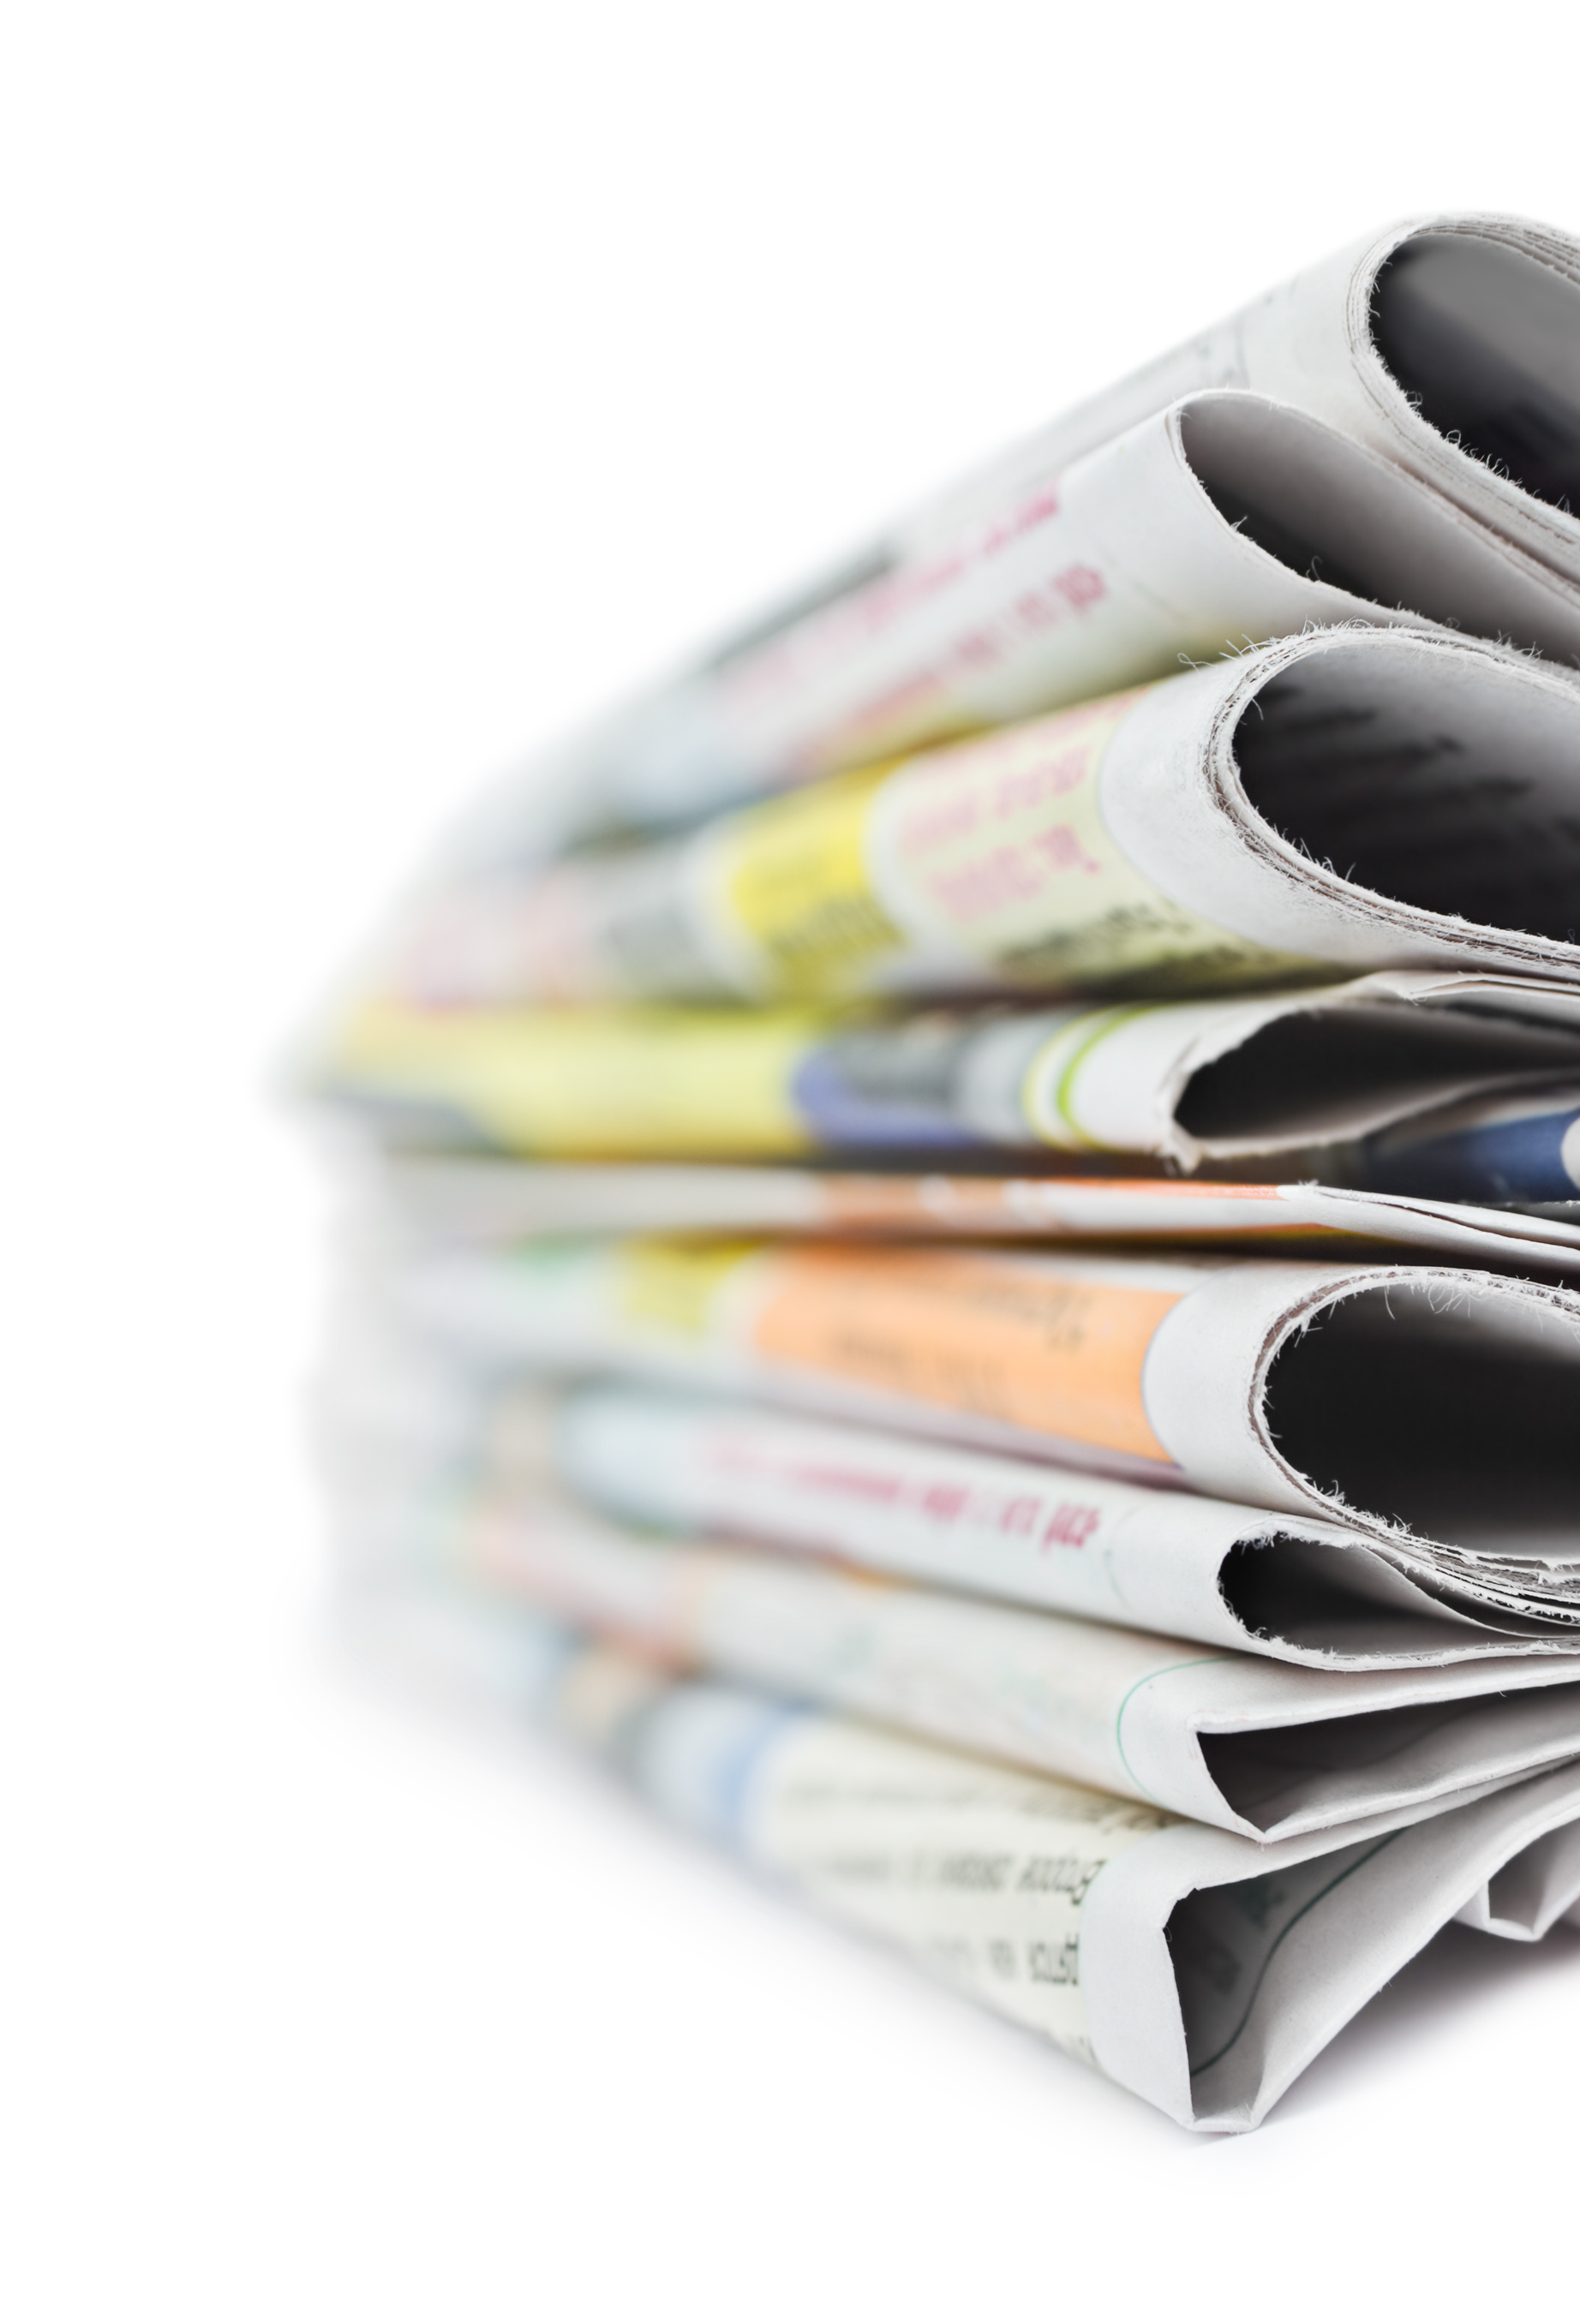 stock-photo-stack-of-newspapers-isolated-on-white-background-93880354